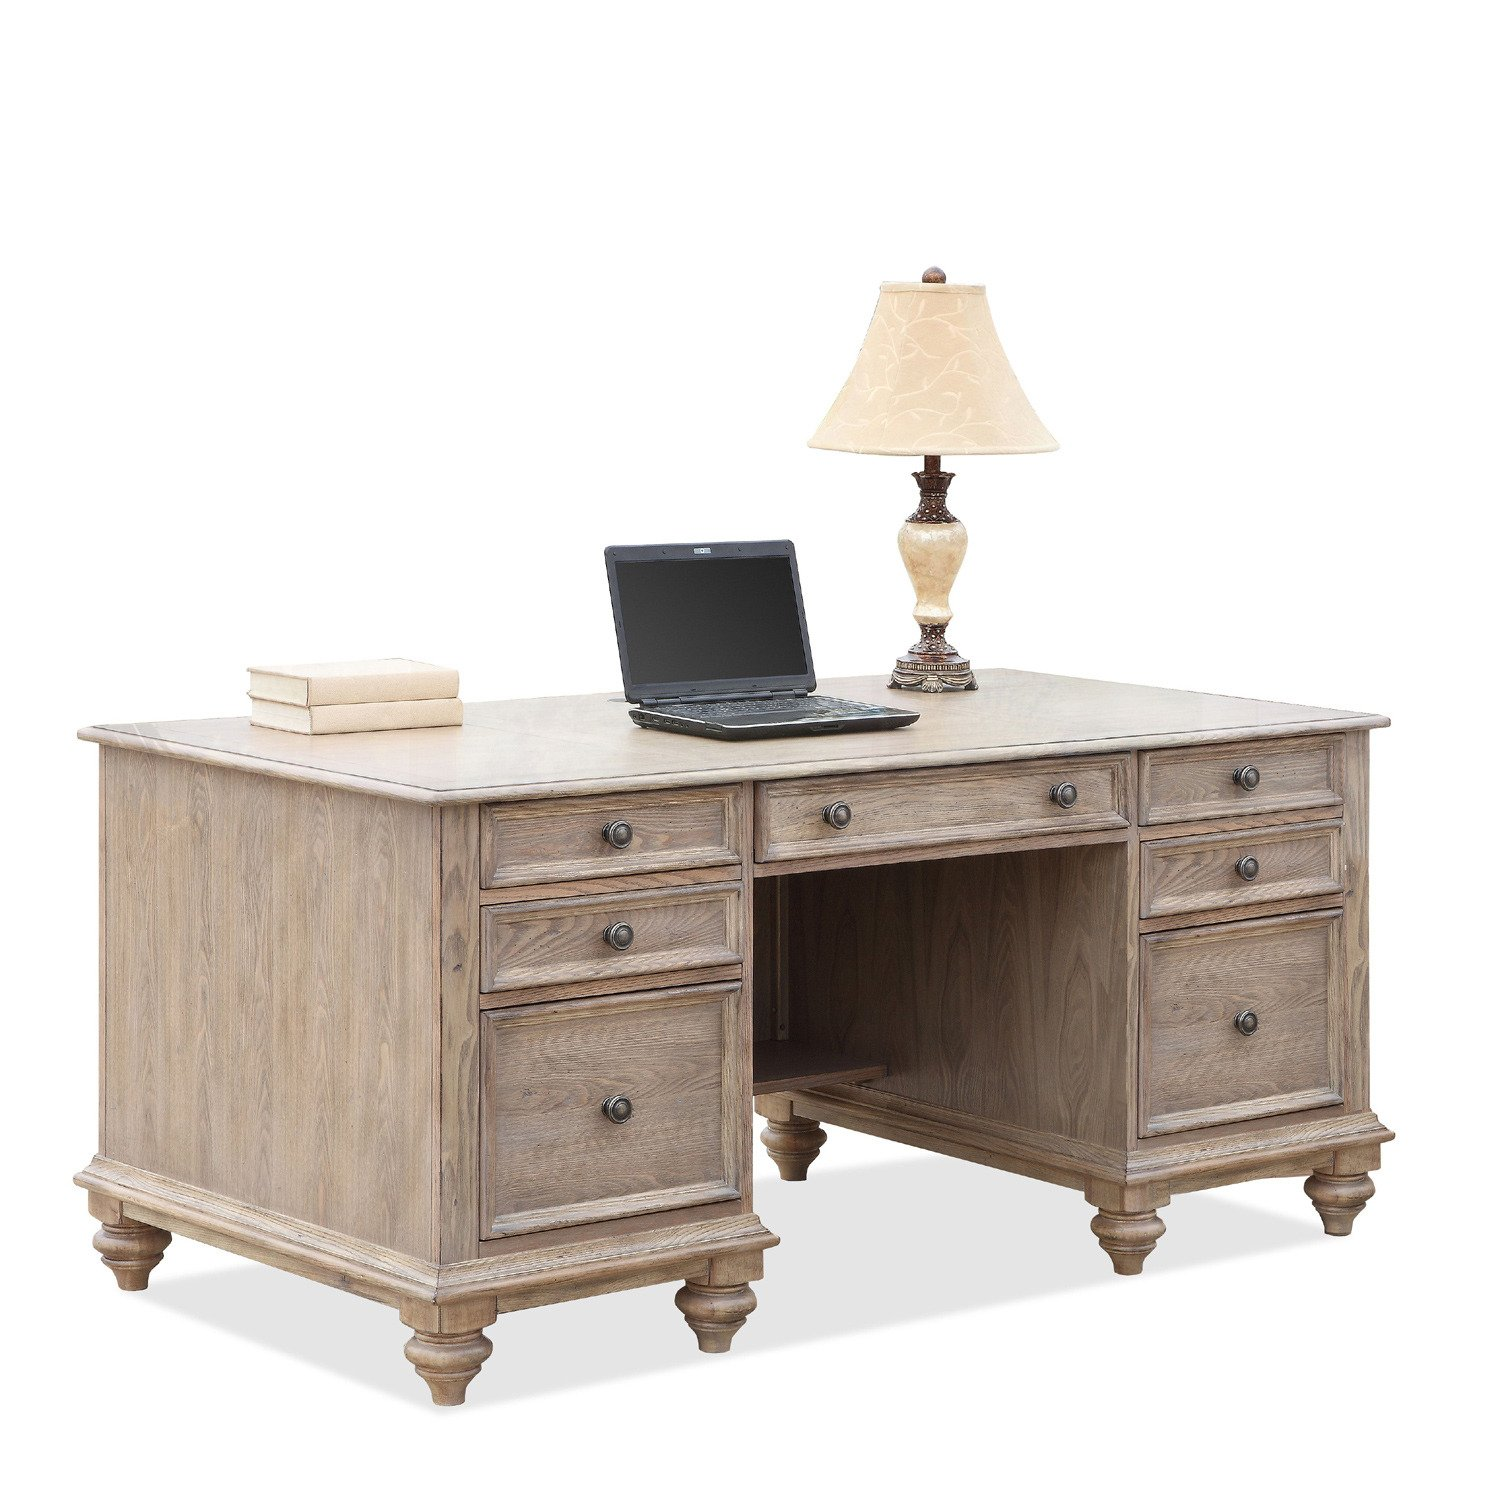 amazoncom coventry two tone executive desk w drawers kitchen dining